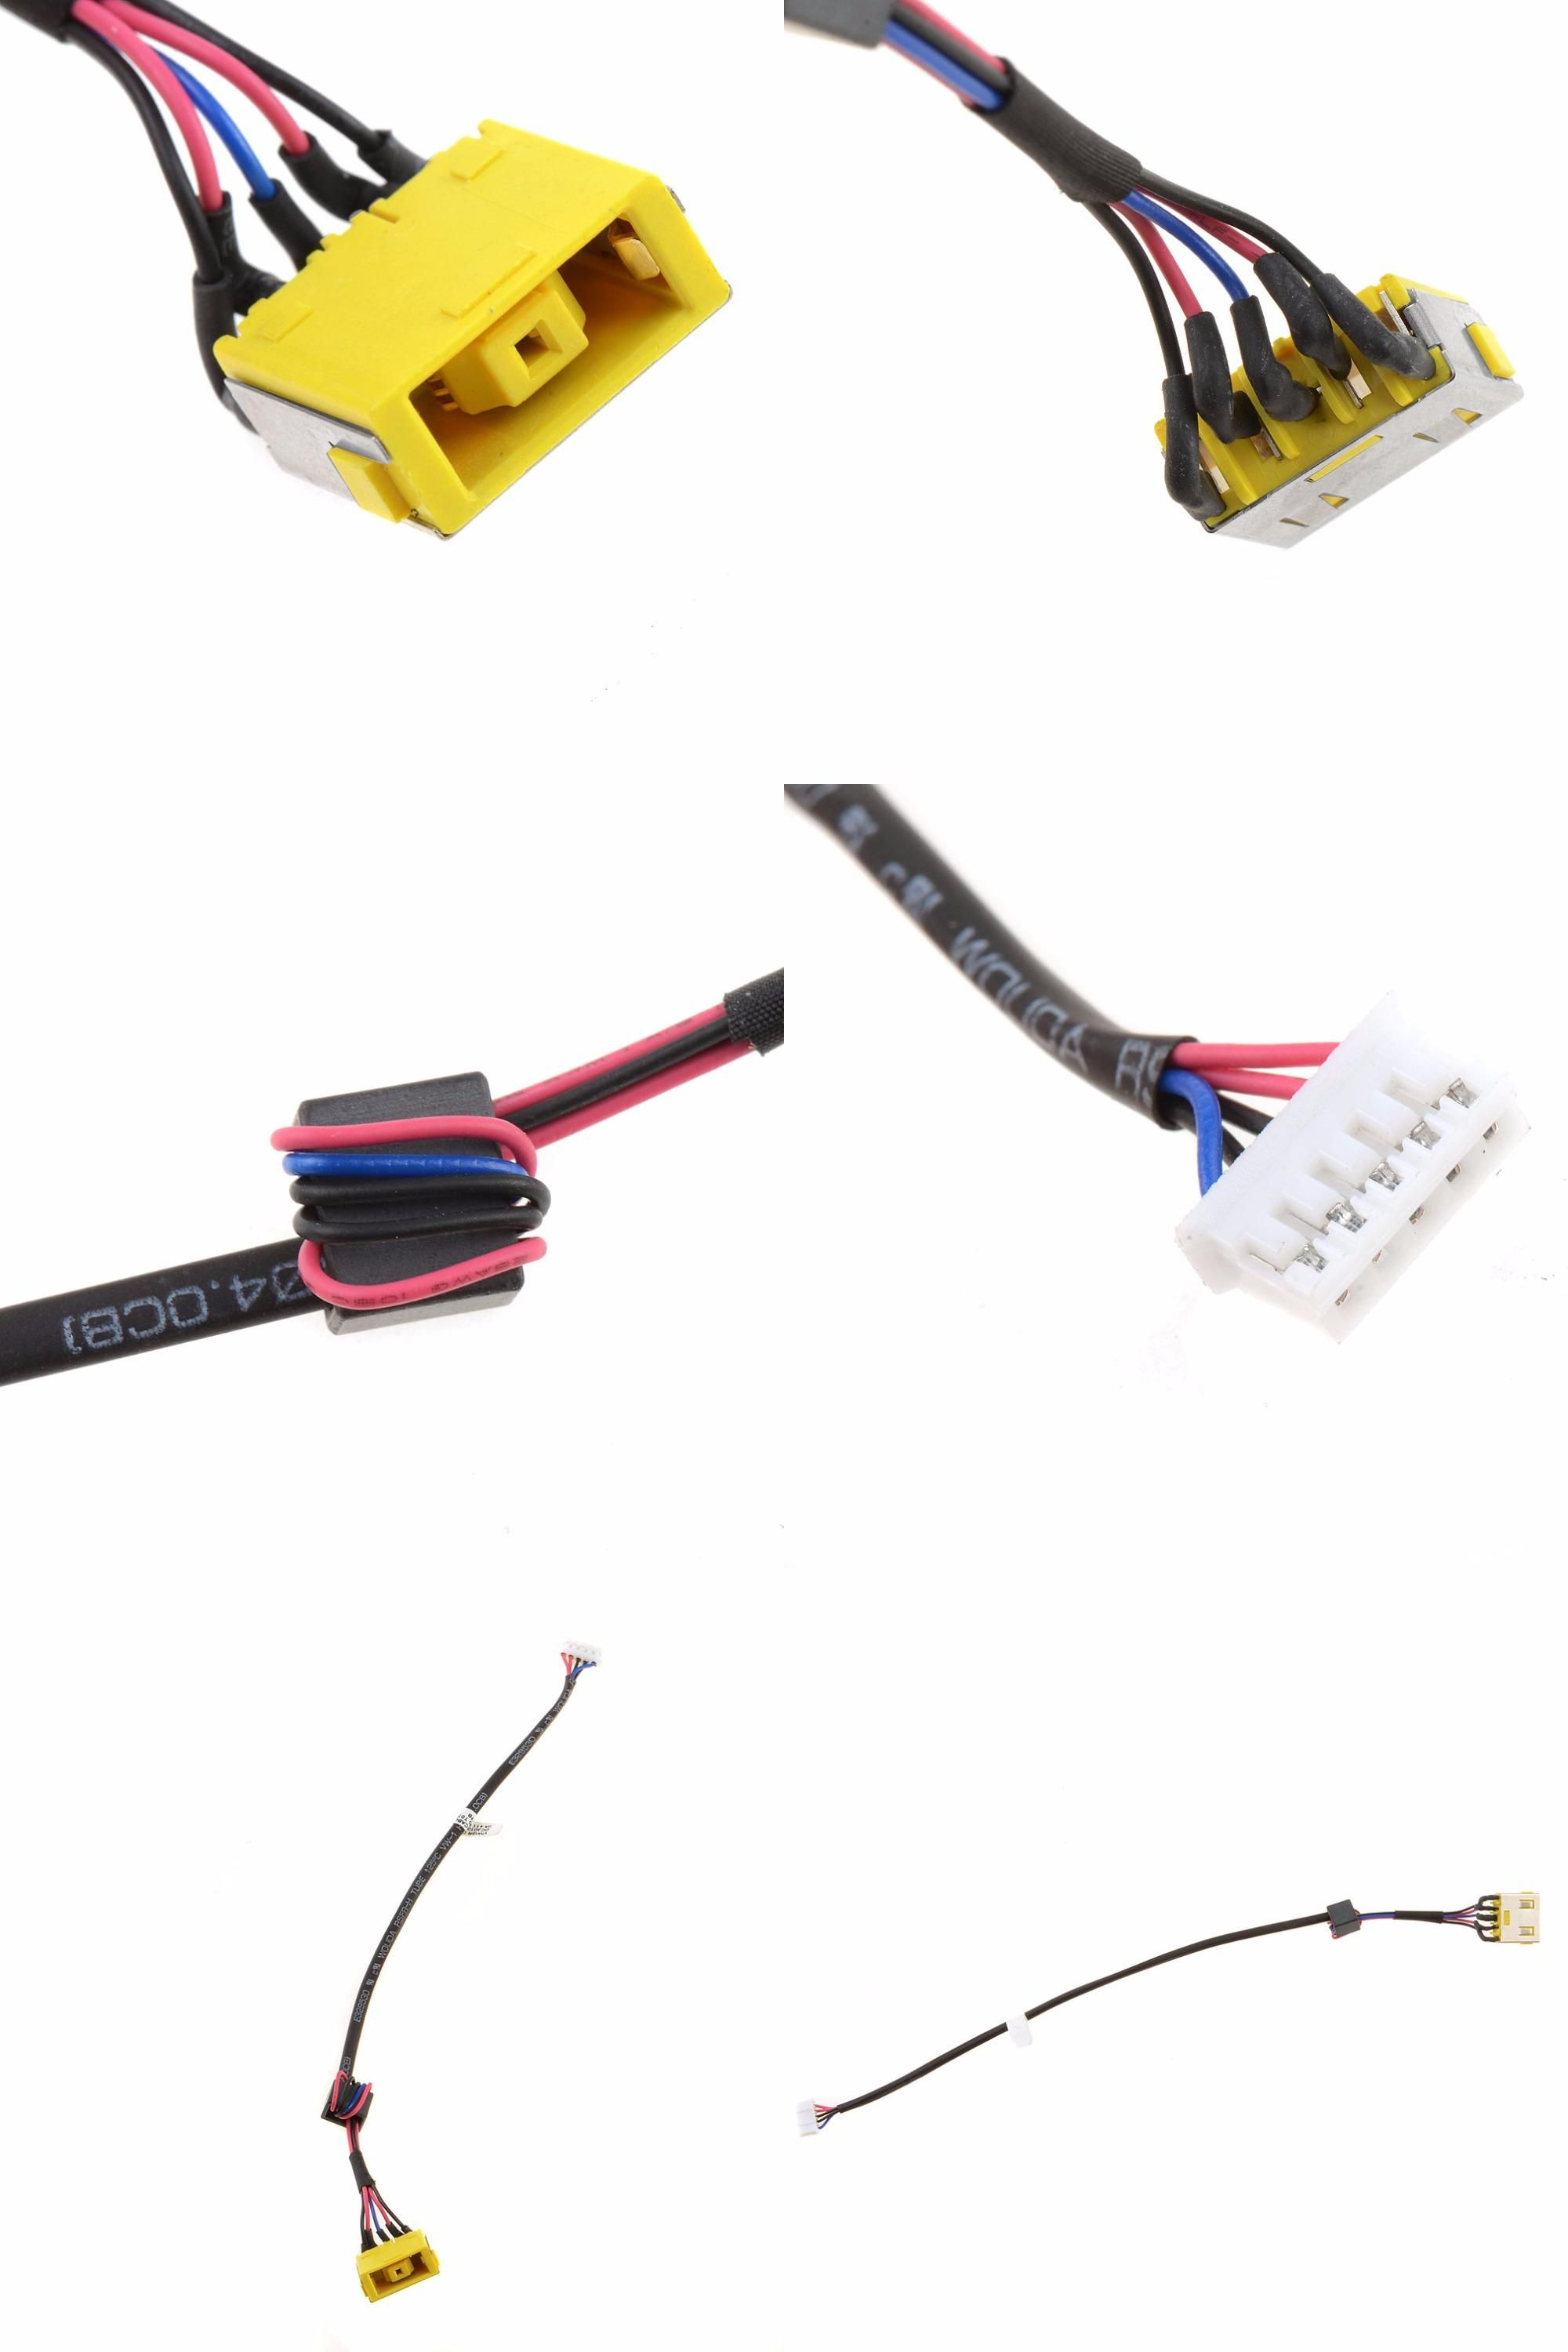 Visit to Buy] Notebook Replacement DC Power Jack Socket Harness ...